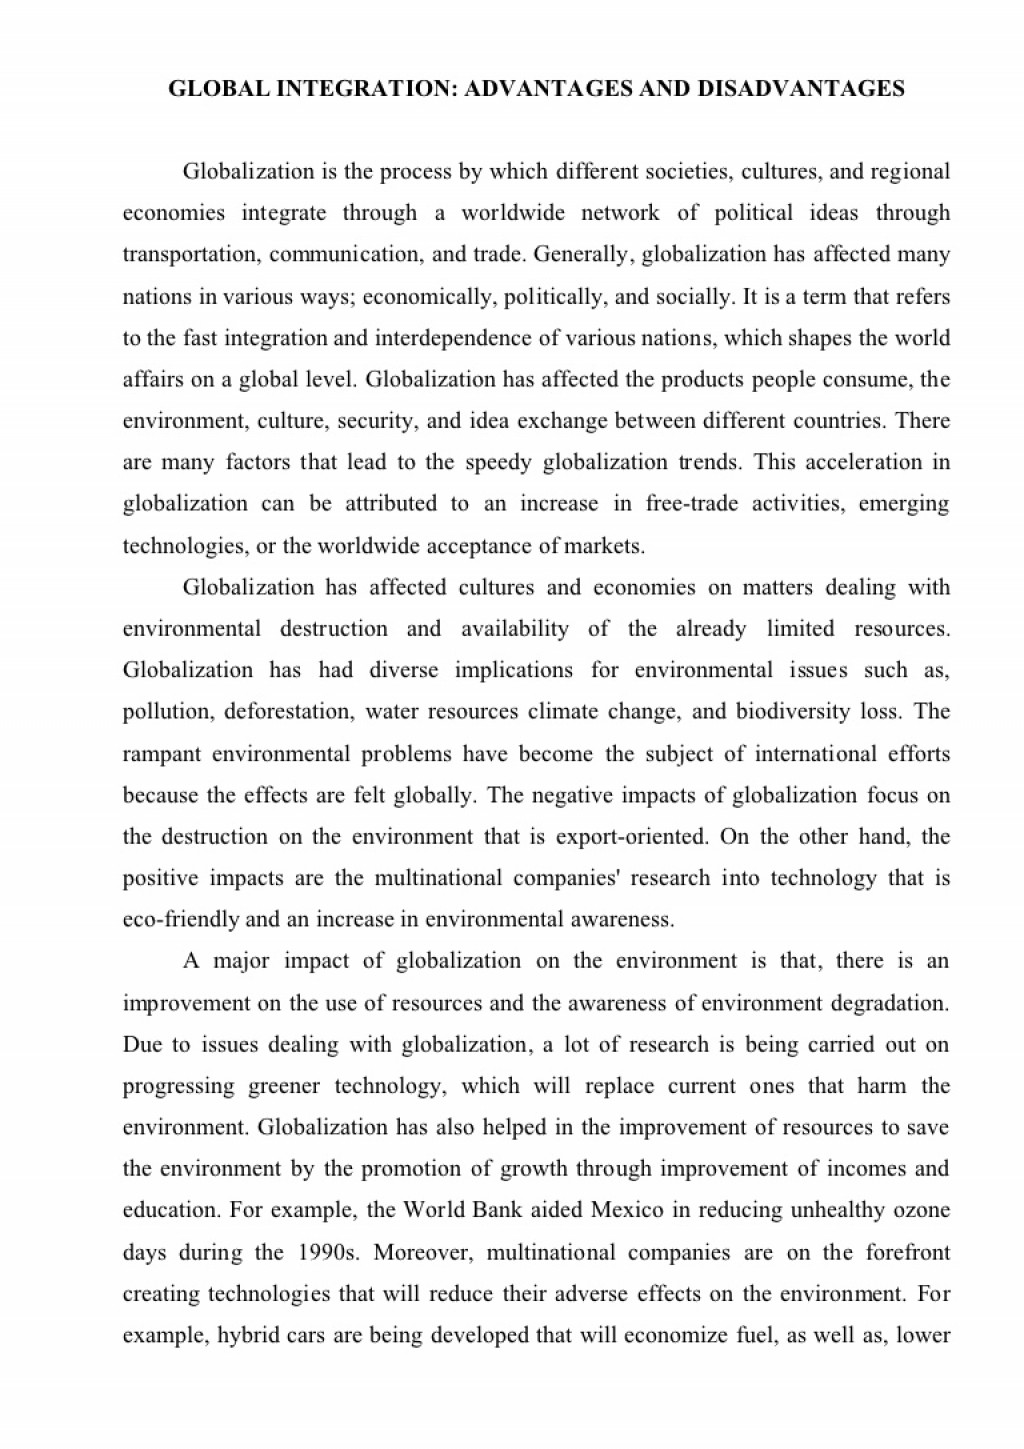 021 Essayglobalization Phpapp02 Thumbnail Essay Example Advantage And Disadvantage Of Shocking Science Advantages Disadvantages In Marathi Language Urdu Tamil Pdf Large